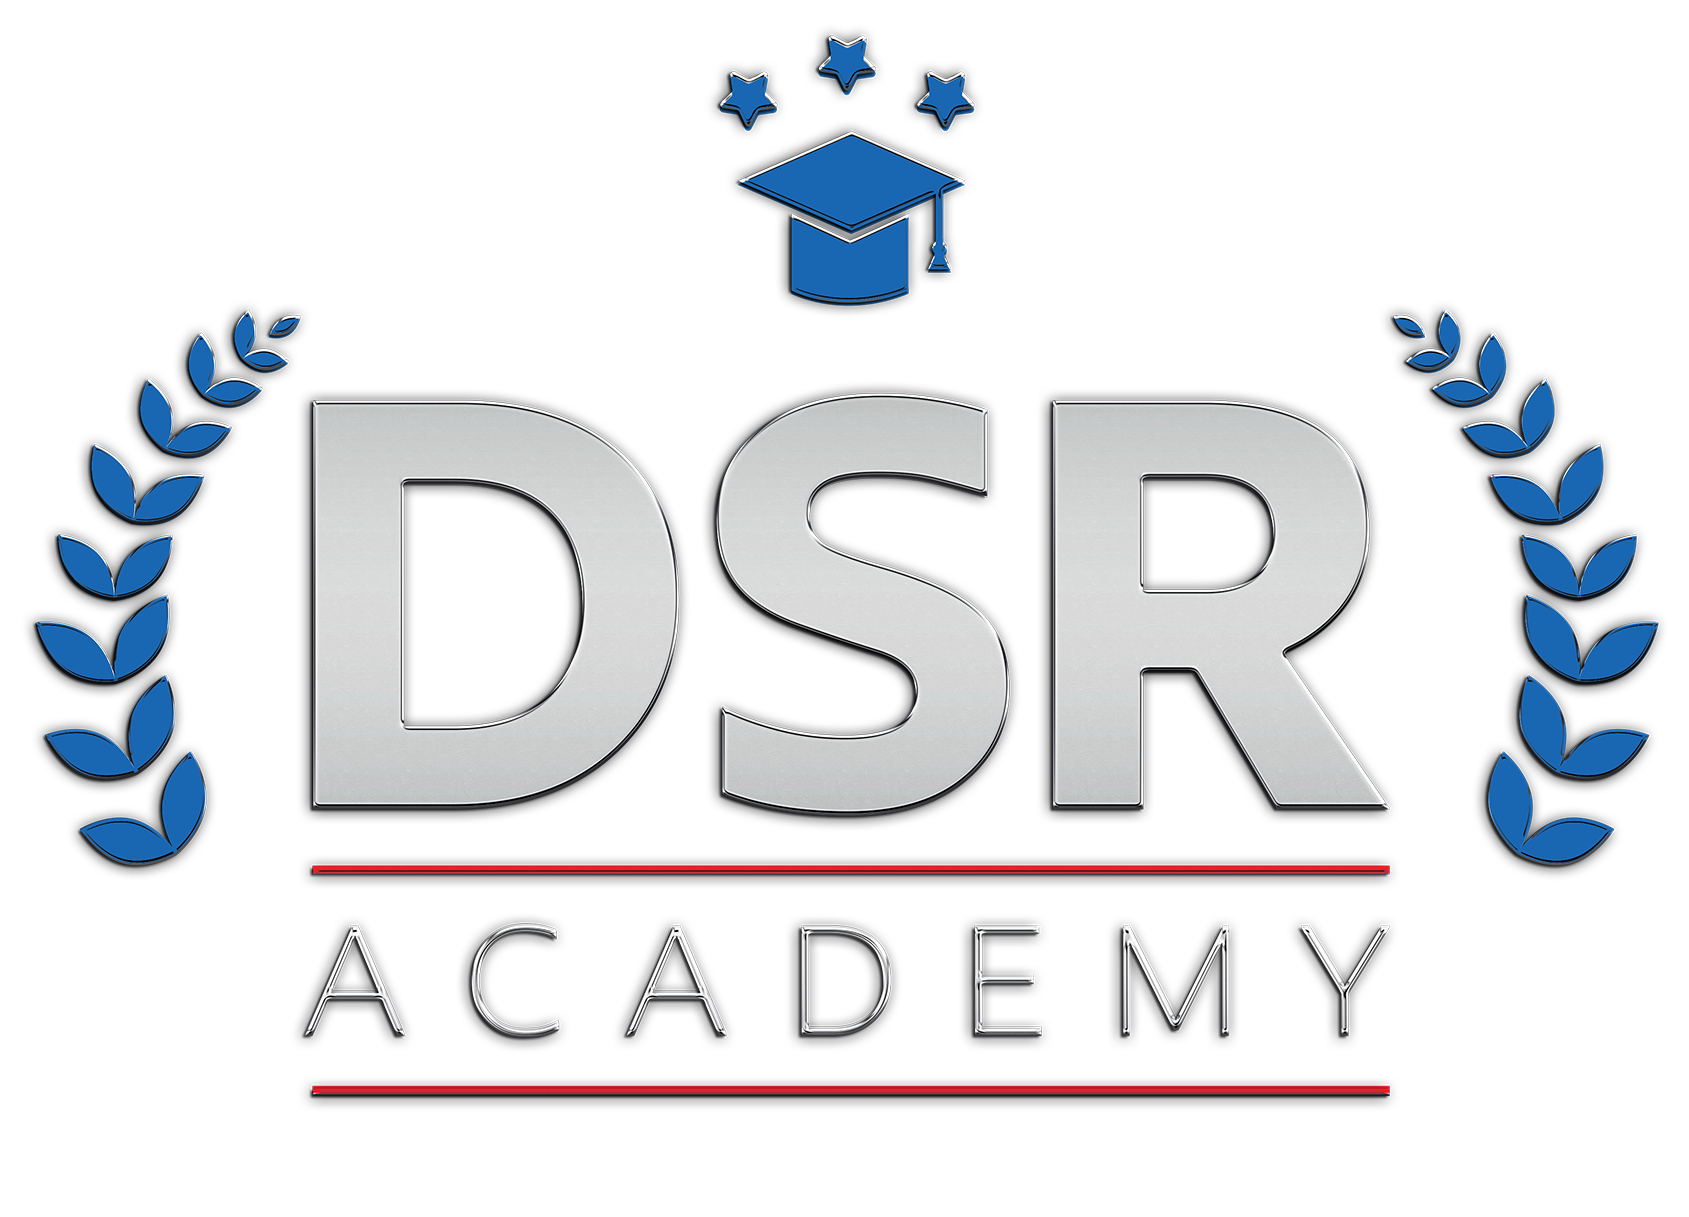 ¿Cómo planear la visita? DSR Academy Retail - Video 5 Ventas